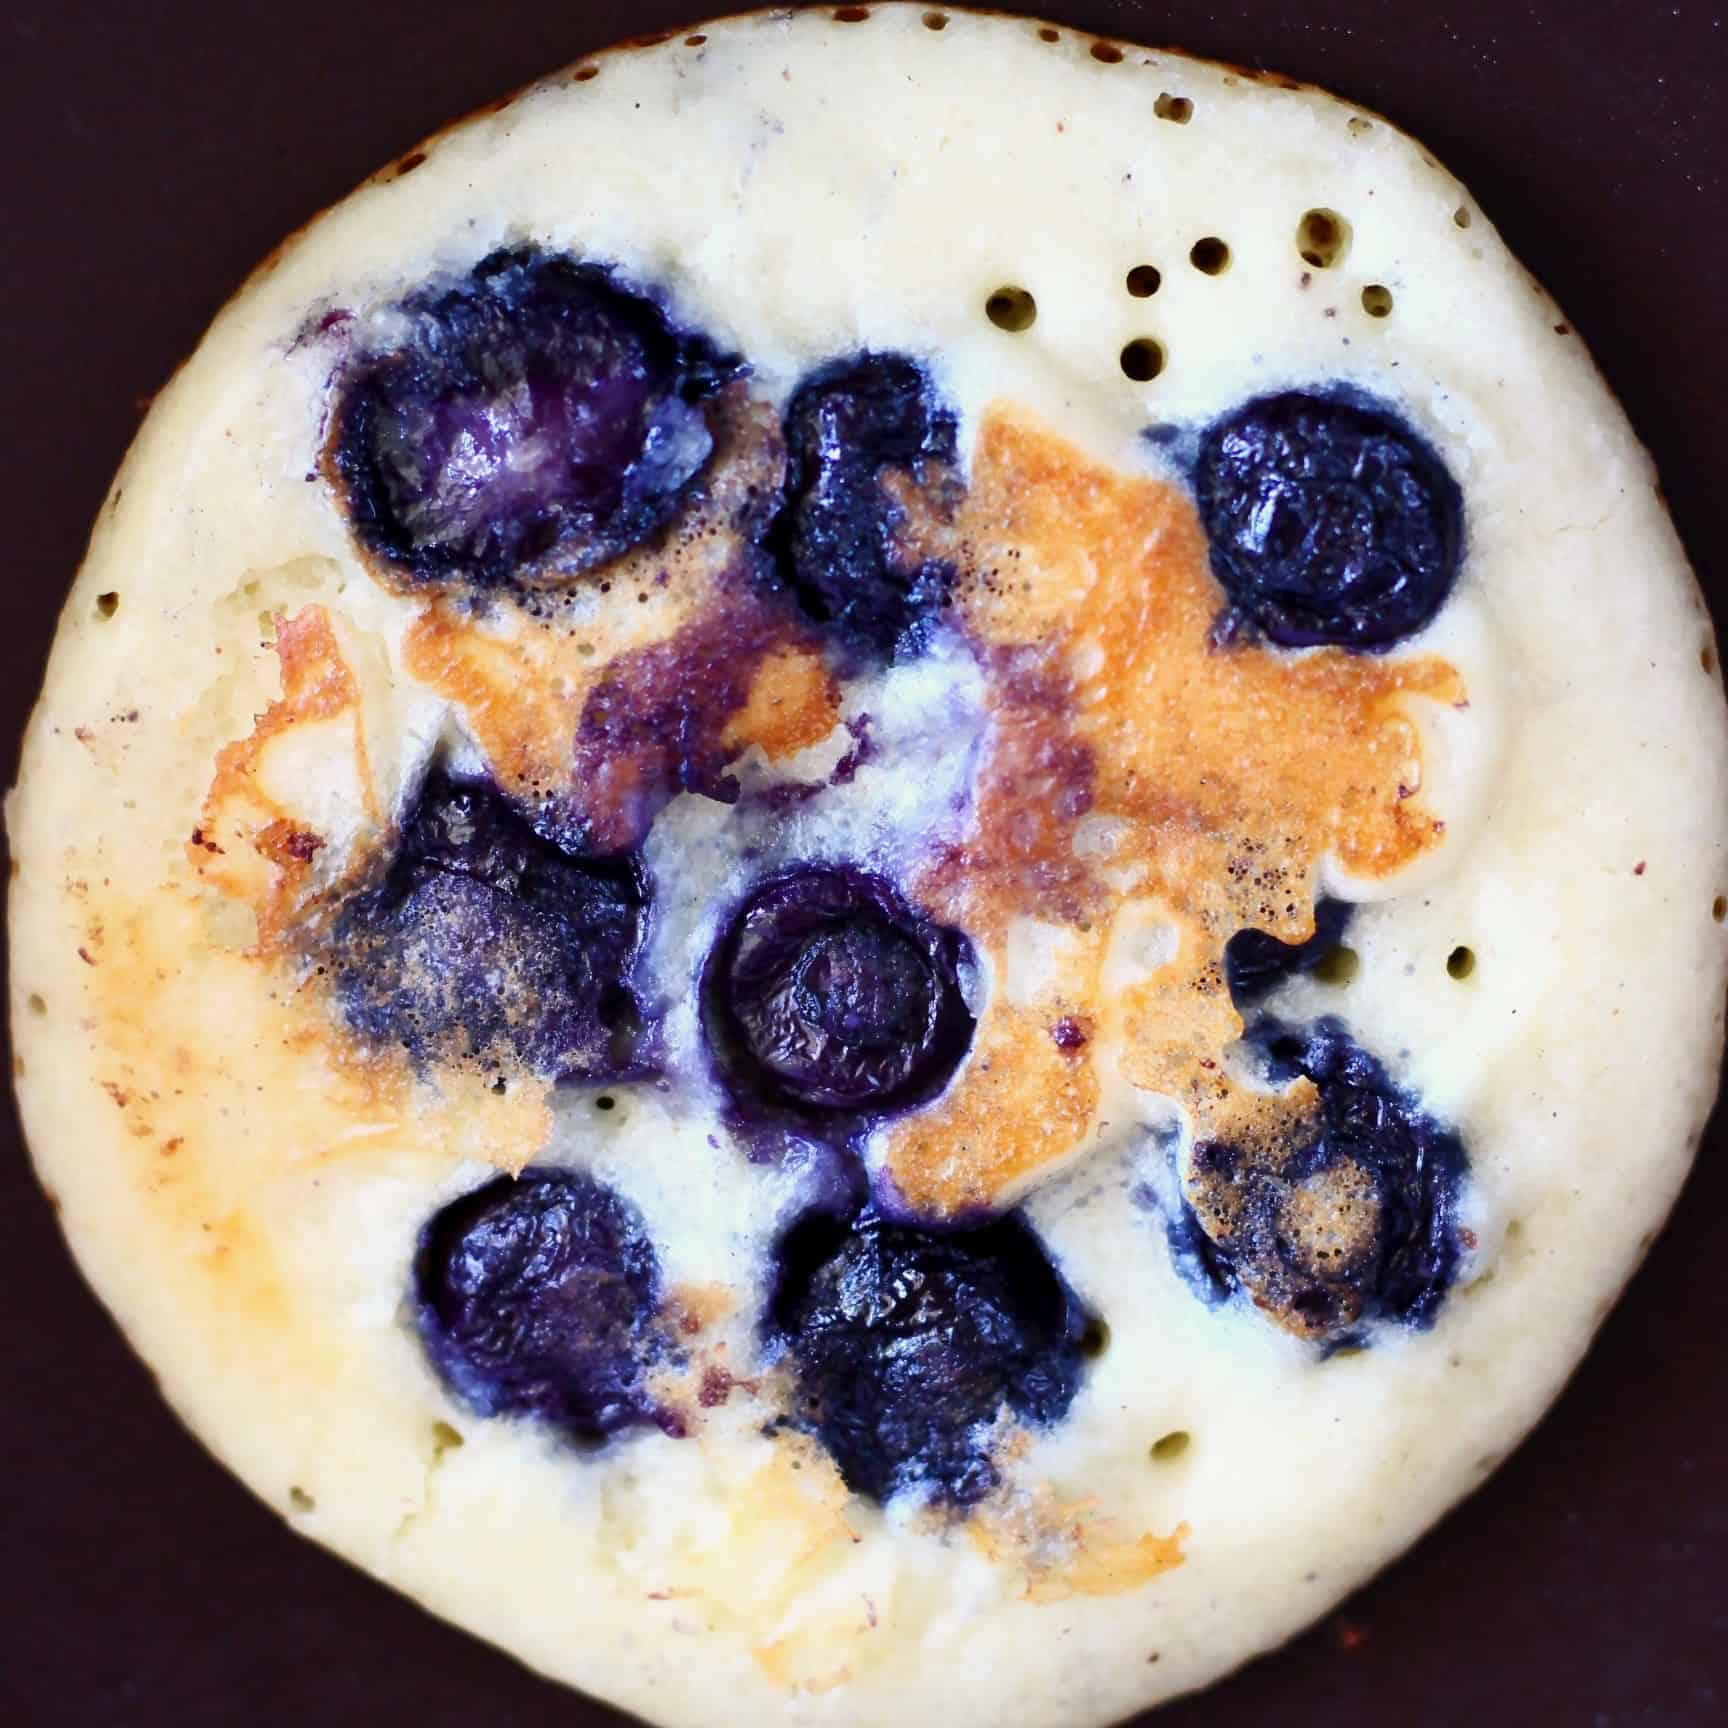 Photo of a blueberry pancake in a frying pan